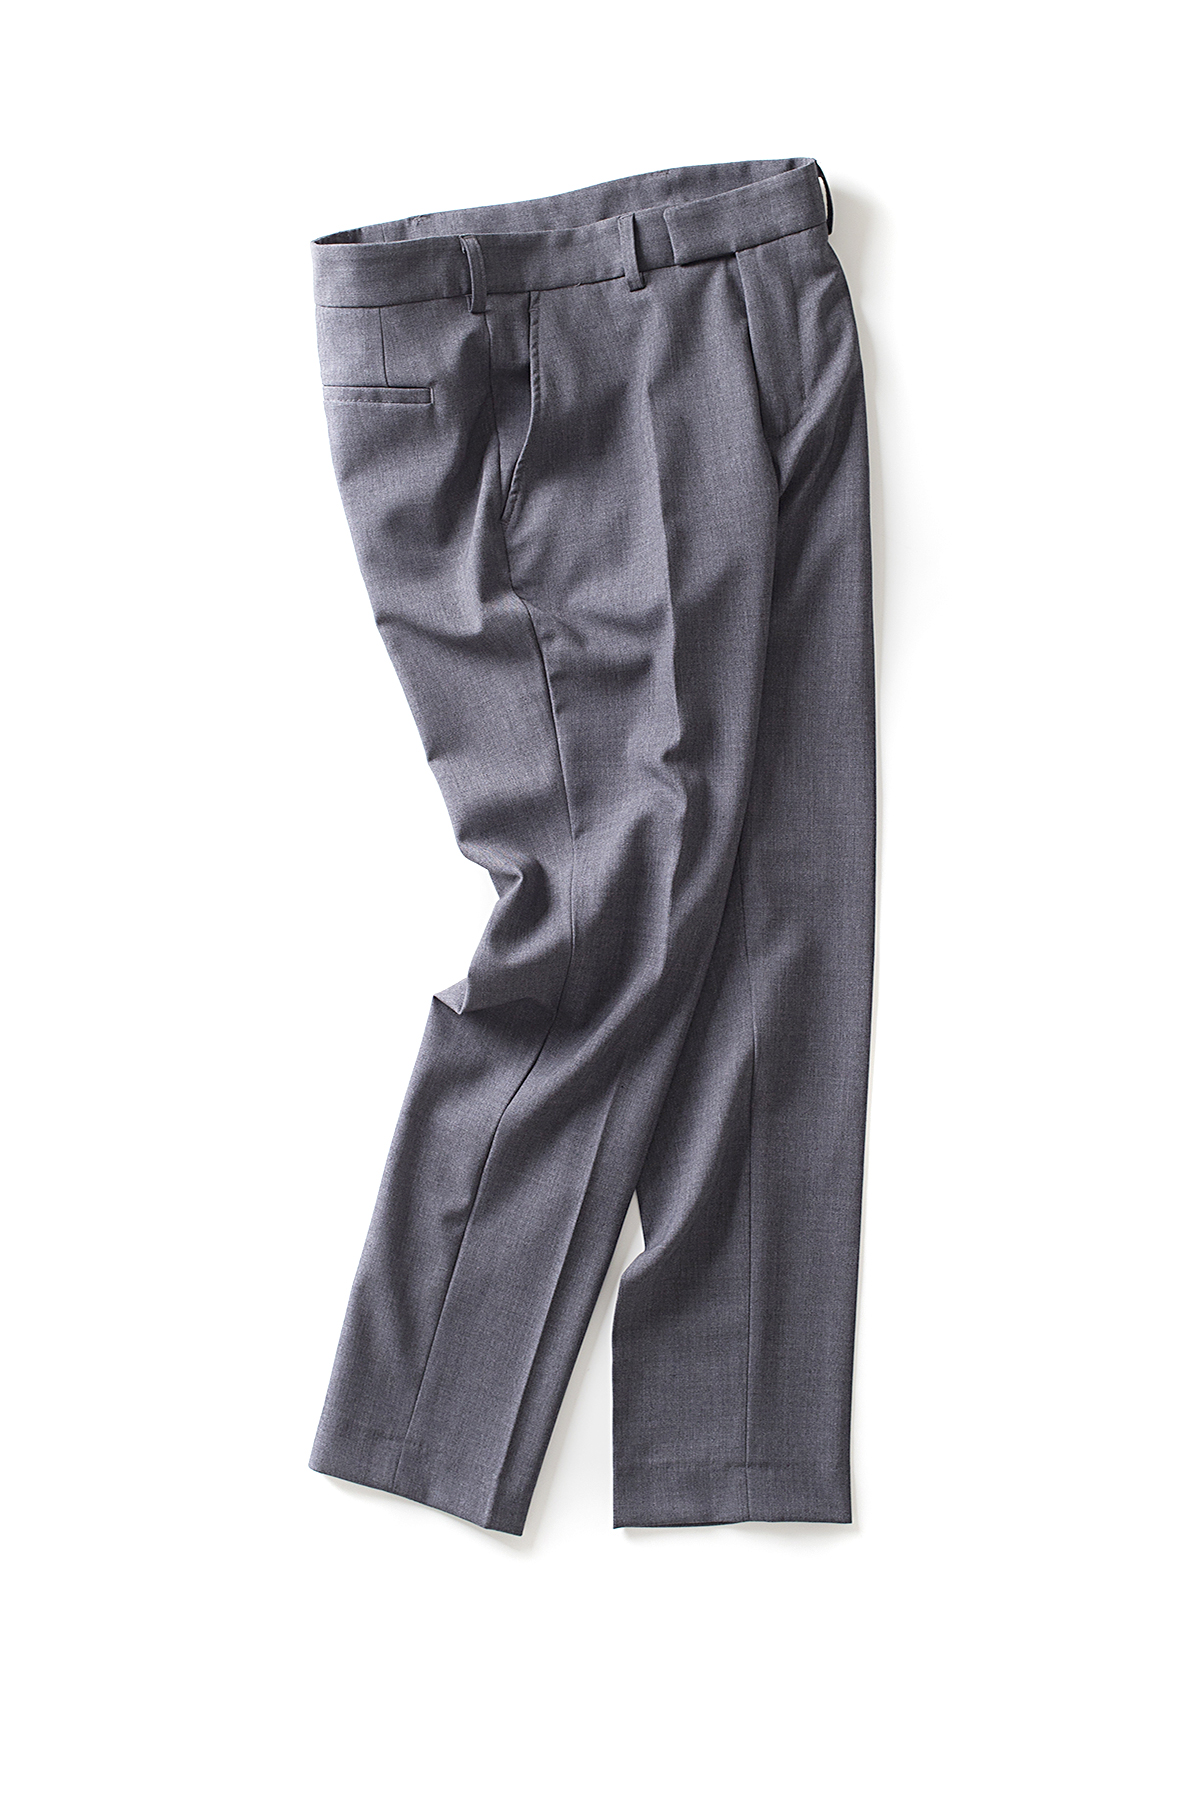 BIRTHDAYSUIT : Daily Pants (Light Grey)